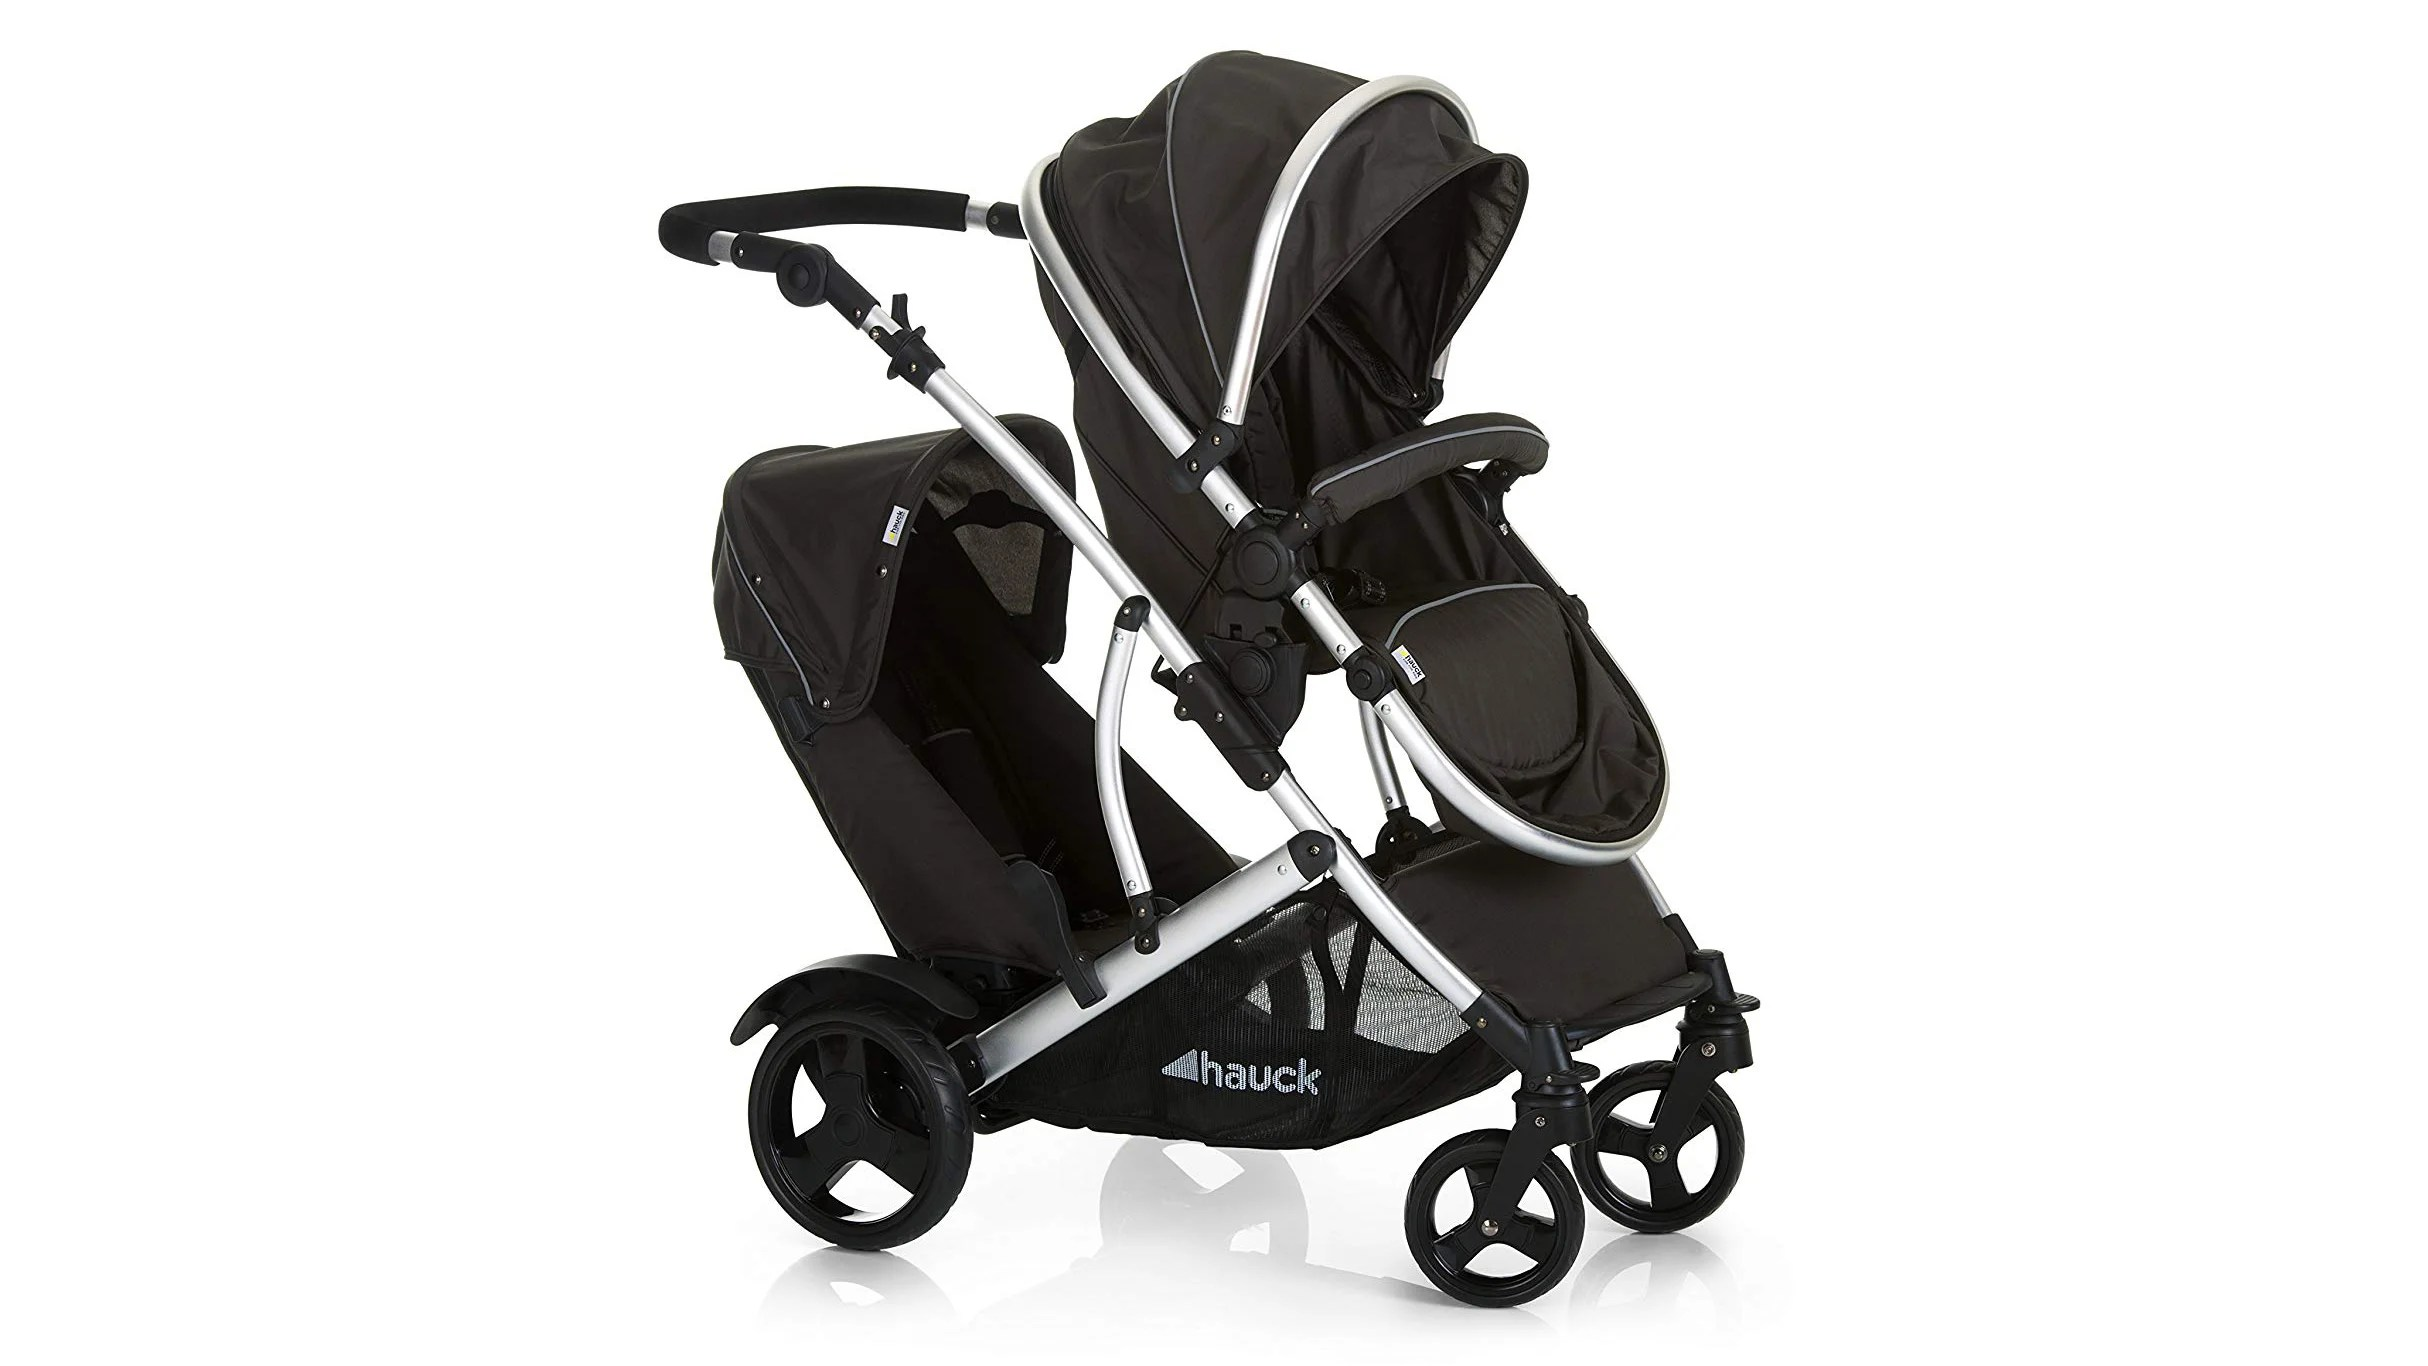 Pram Extra Seat Best Double Buggy The Best Double Pushchairs And Prams For